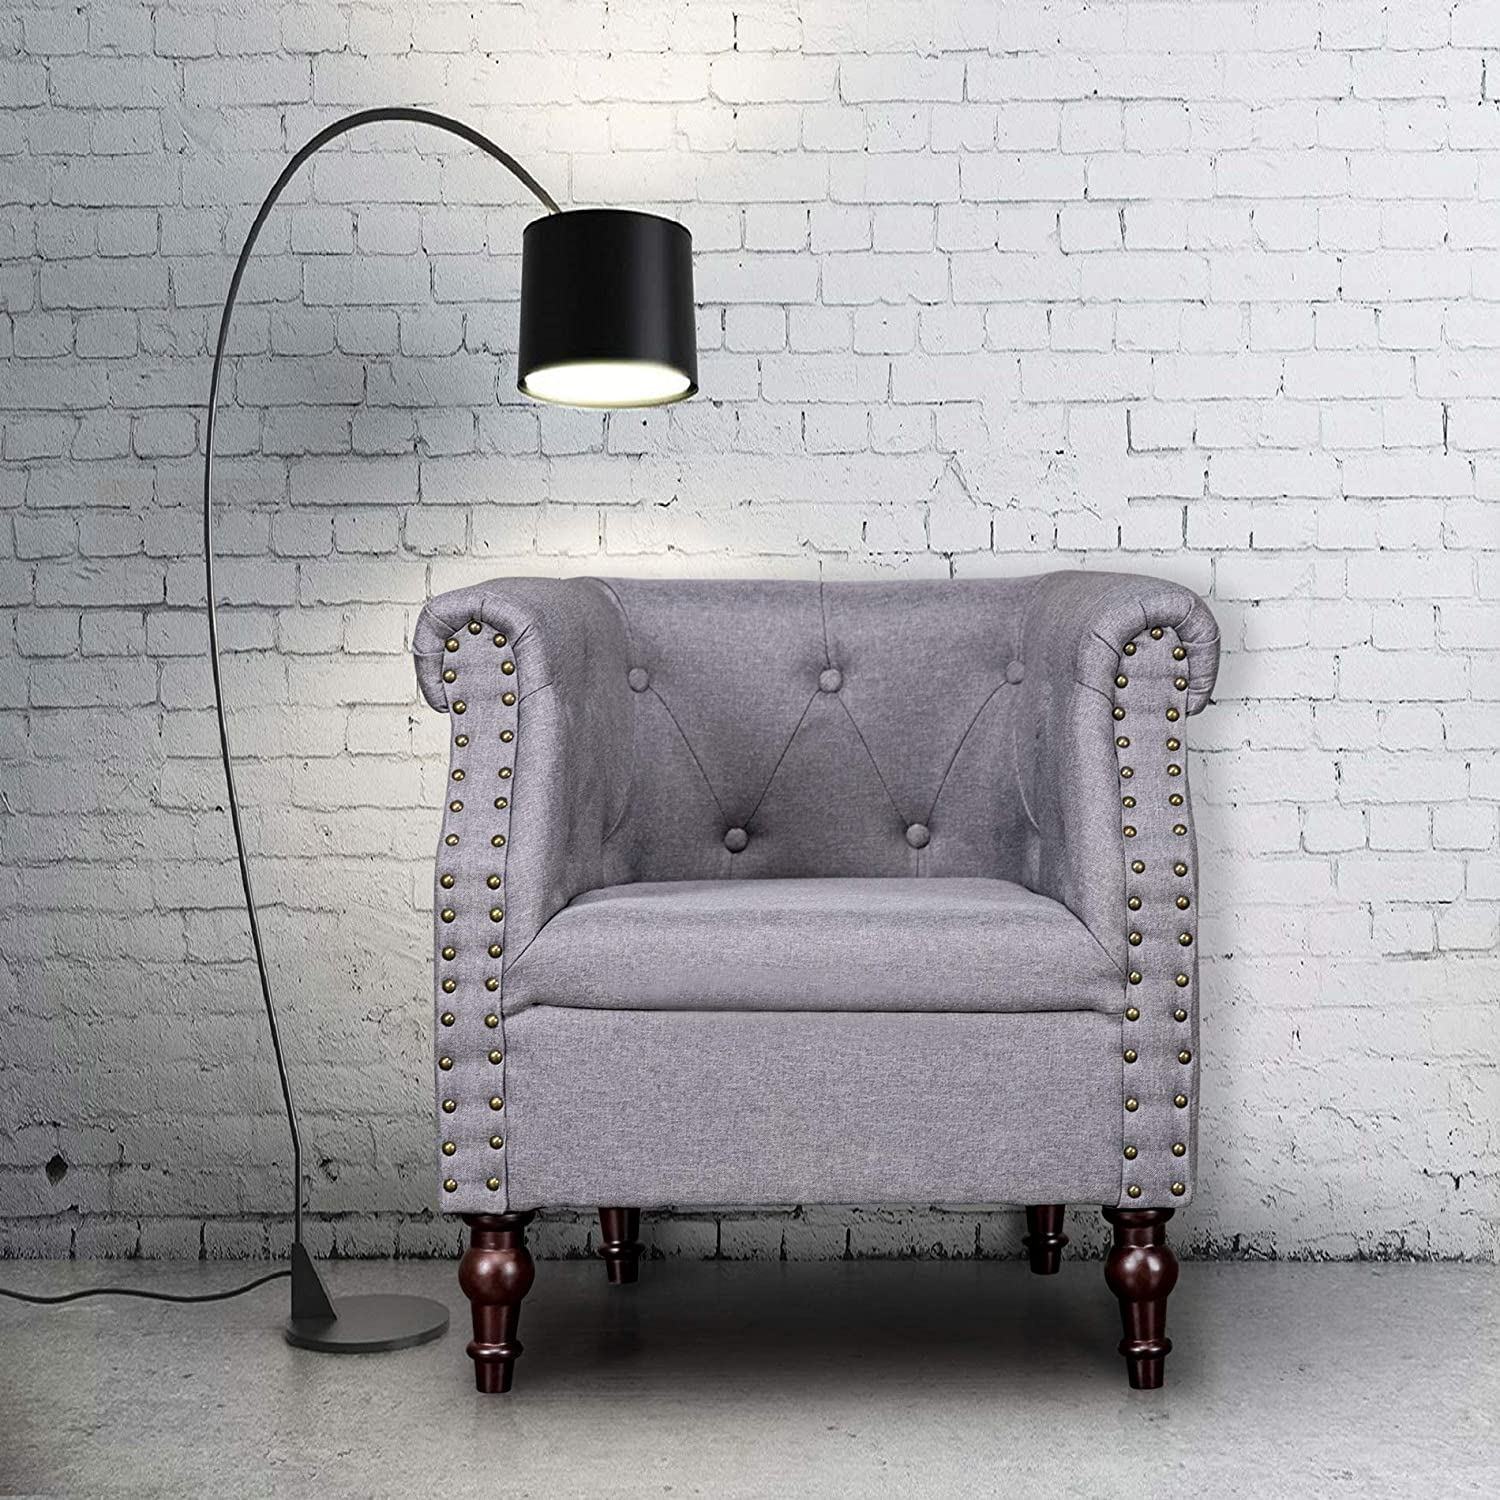 Amazon com furniture arm chair club chair tufted accent chair living room leisure single sofa upholstered room chair with rivets suit bedroom home office